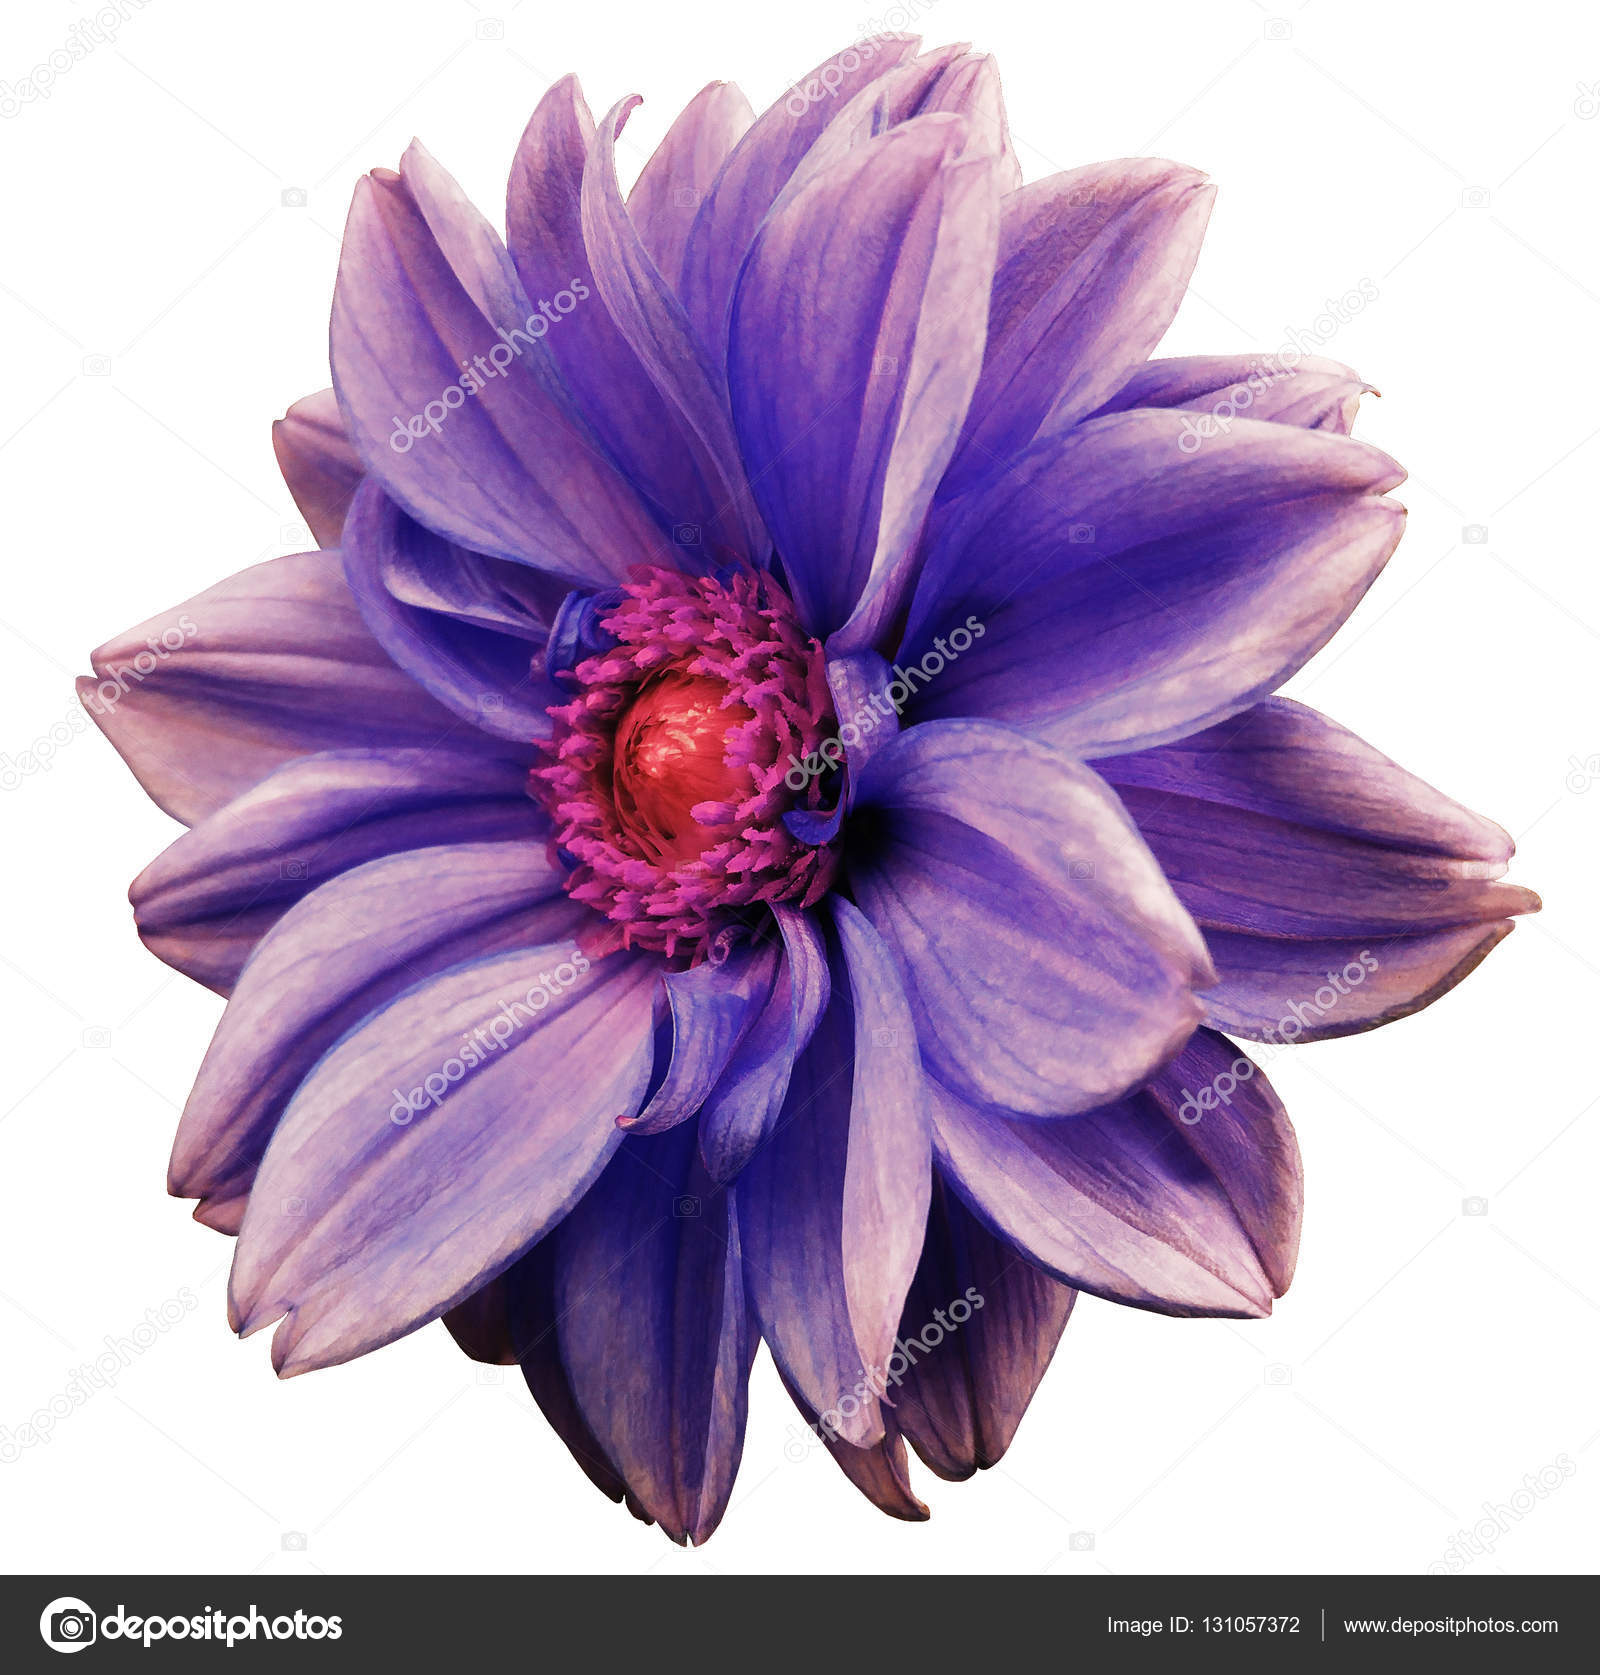 Violet blue white flower dahlia white isolated background with violet blue white flower dahlia white isolated background with clipping path closeup no shadows crimson red center side view for design mightylinksfo